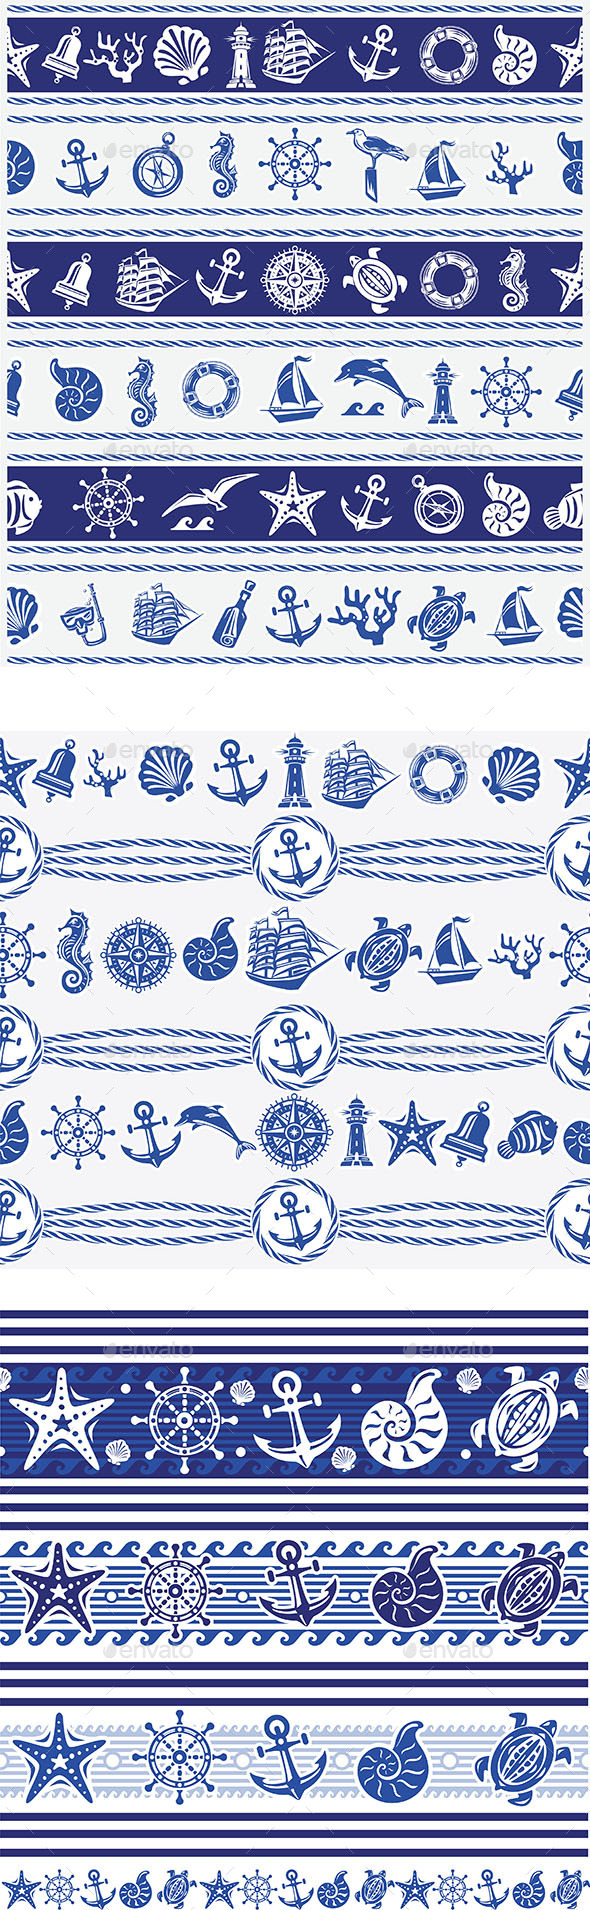 GraphicRiver Borders with Nautical and Sea Symbols 10822999